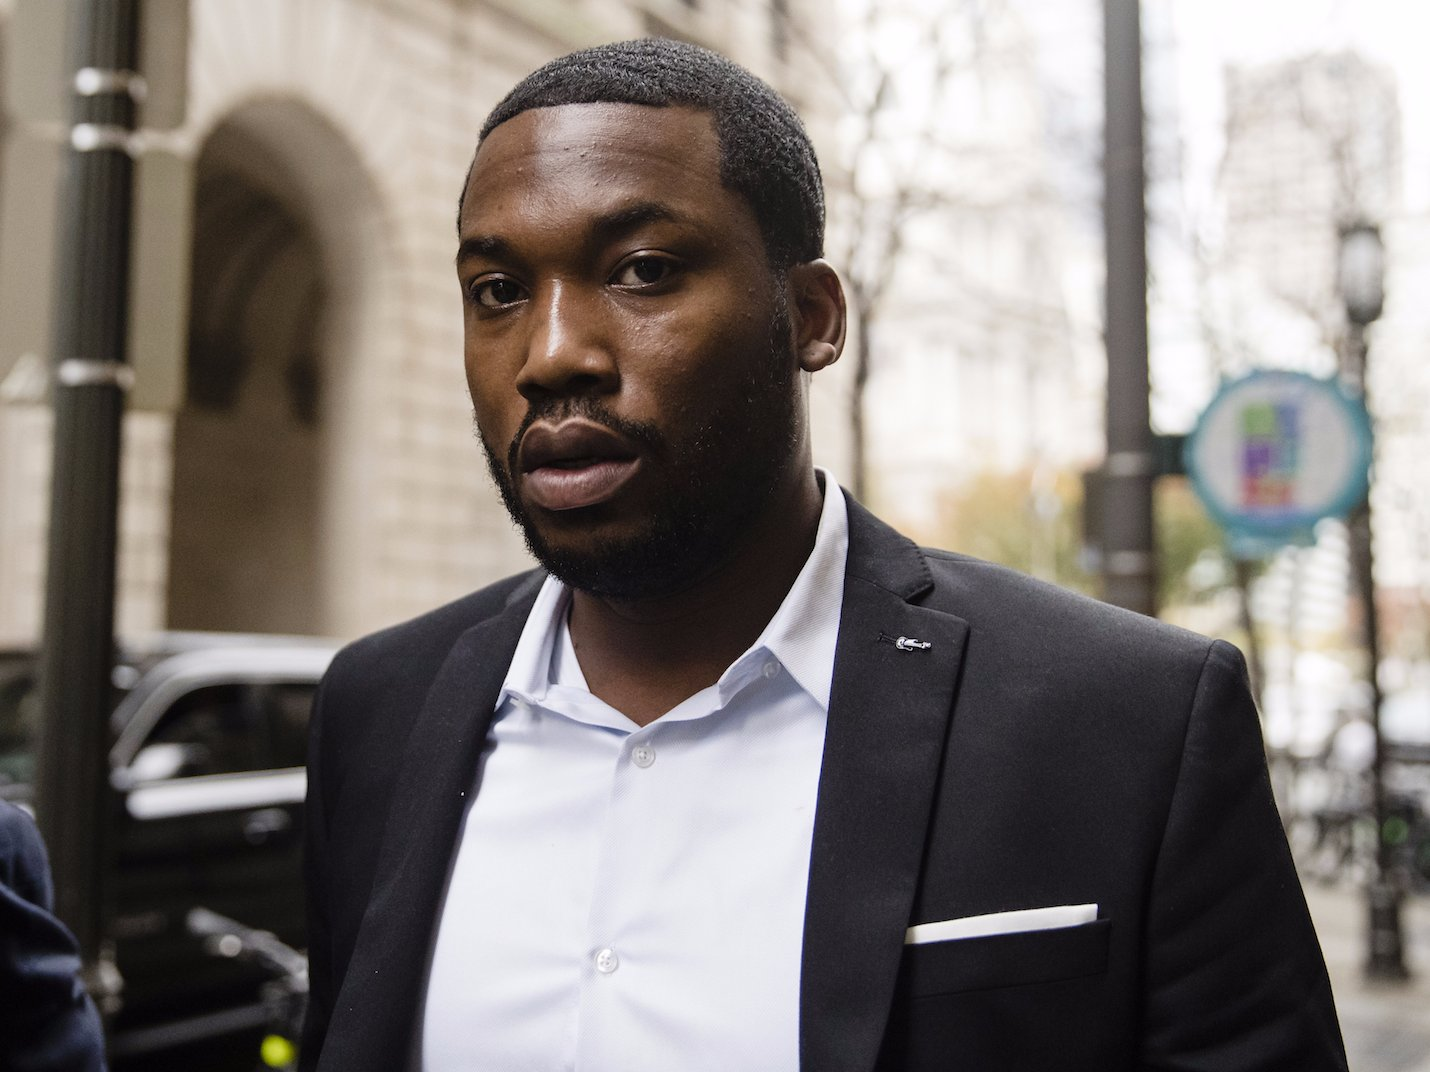 Pennsylvania Governor Tom Wolf Creates Petition to Reevaluate Meek Mill's Sentence